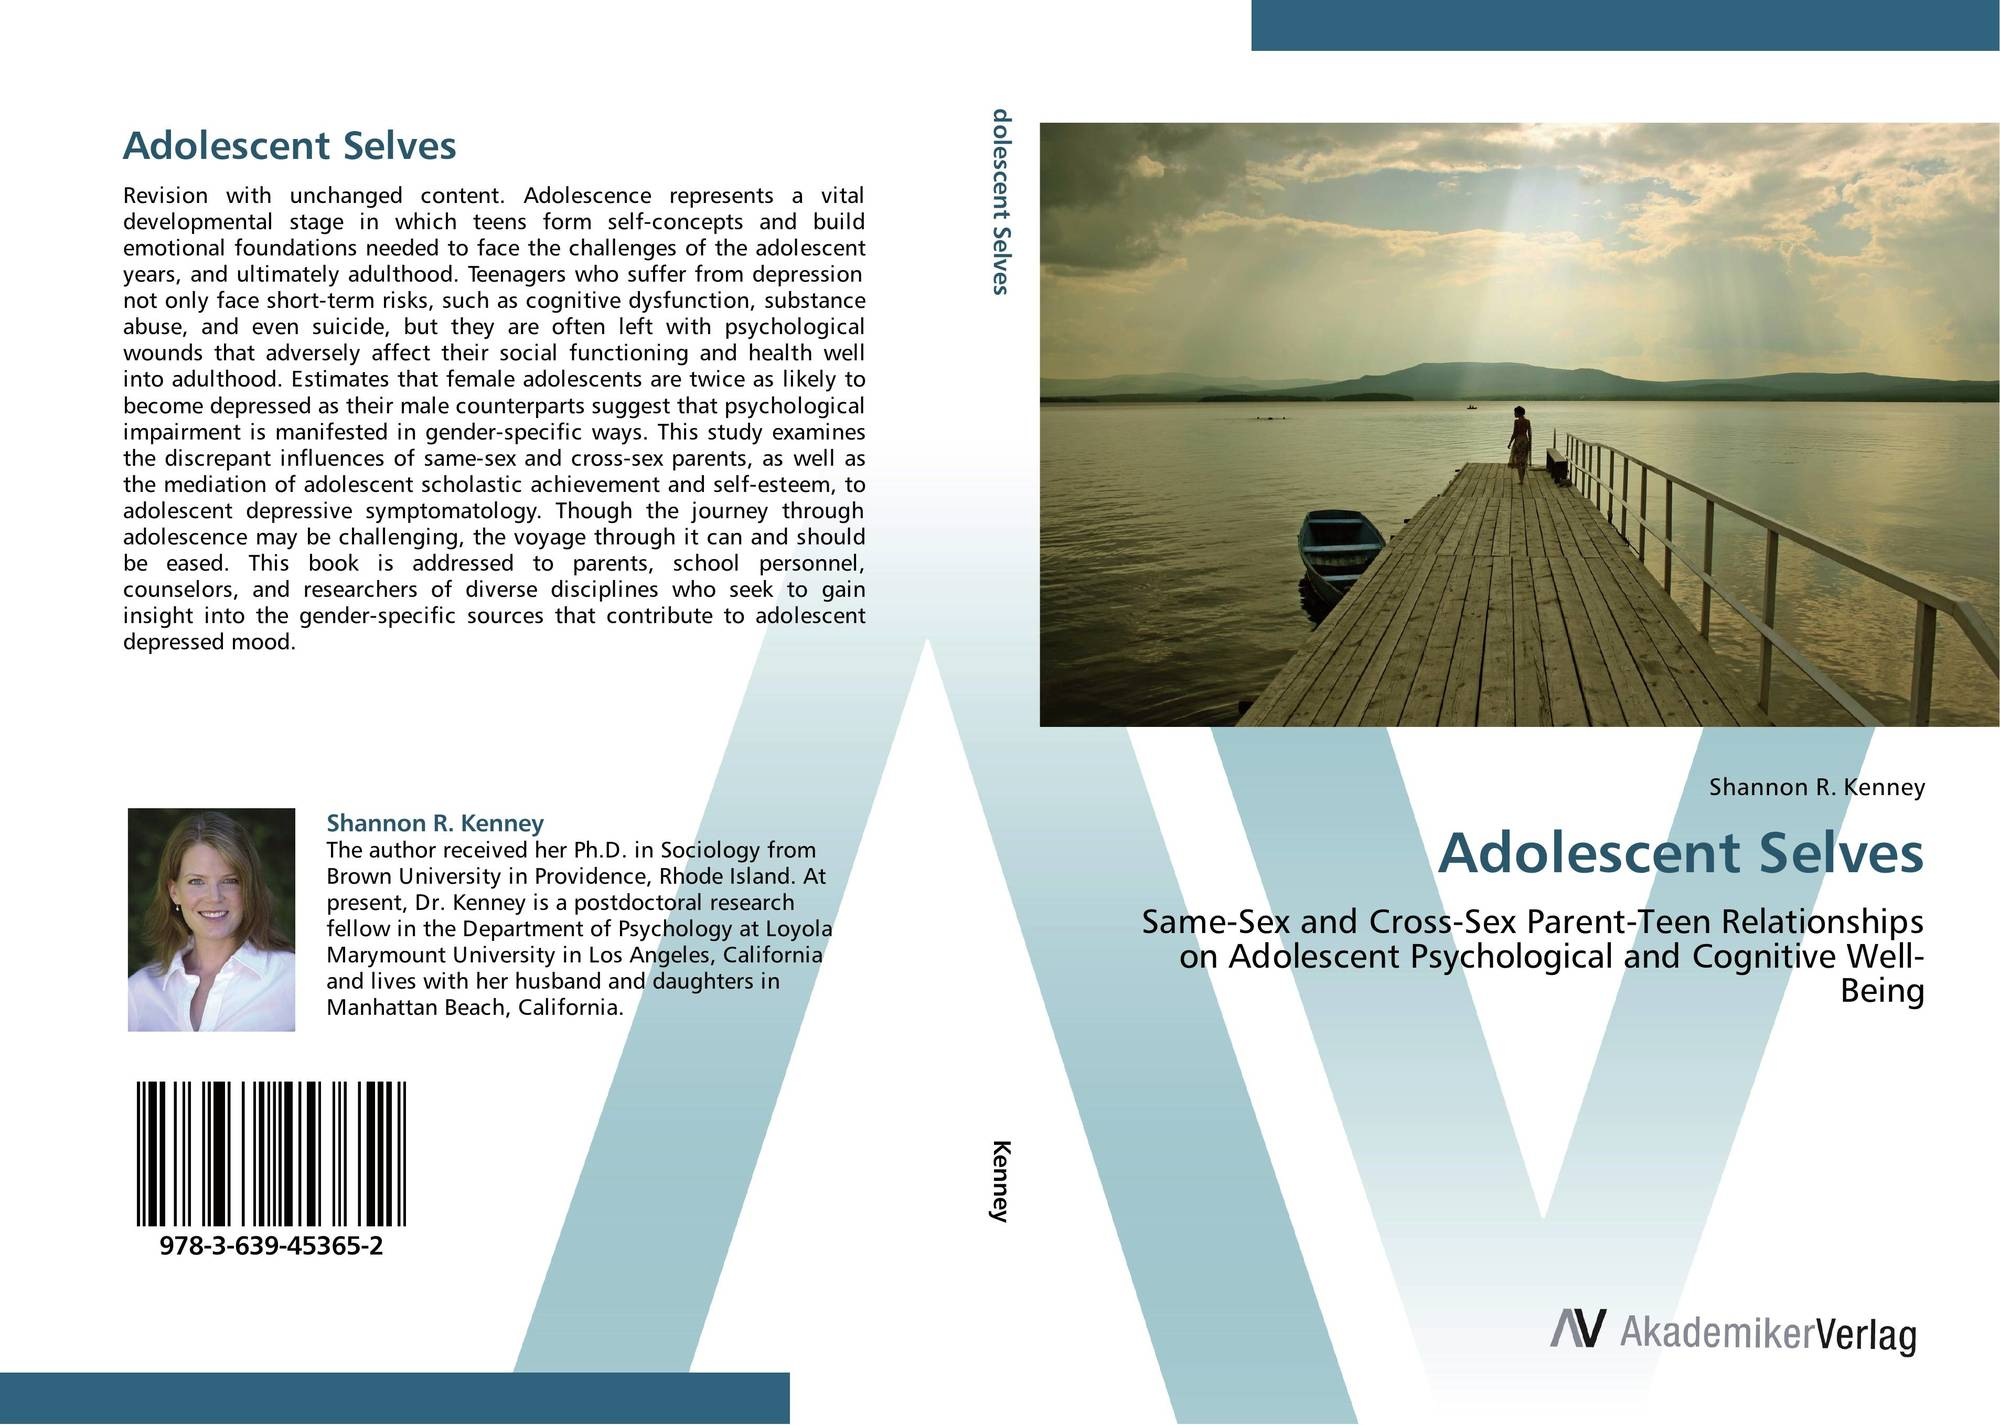 an analysis of the relationship of the self esteem and depression in adolescence